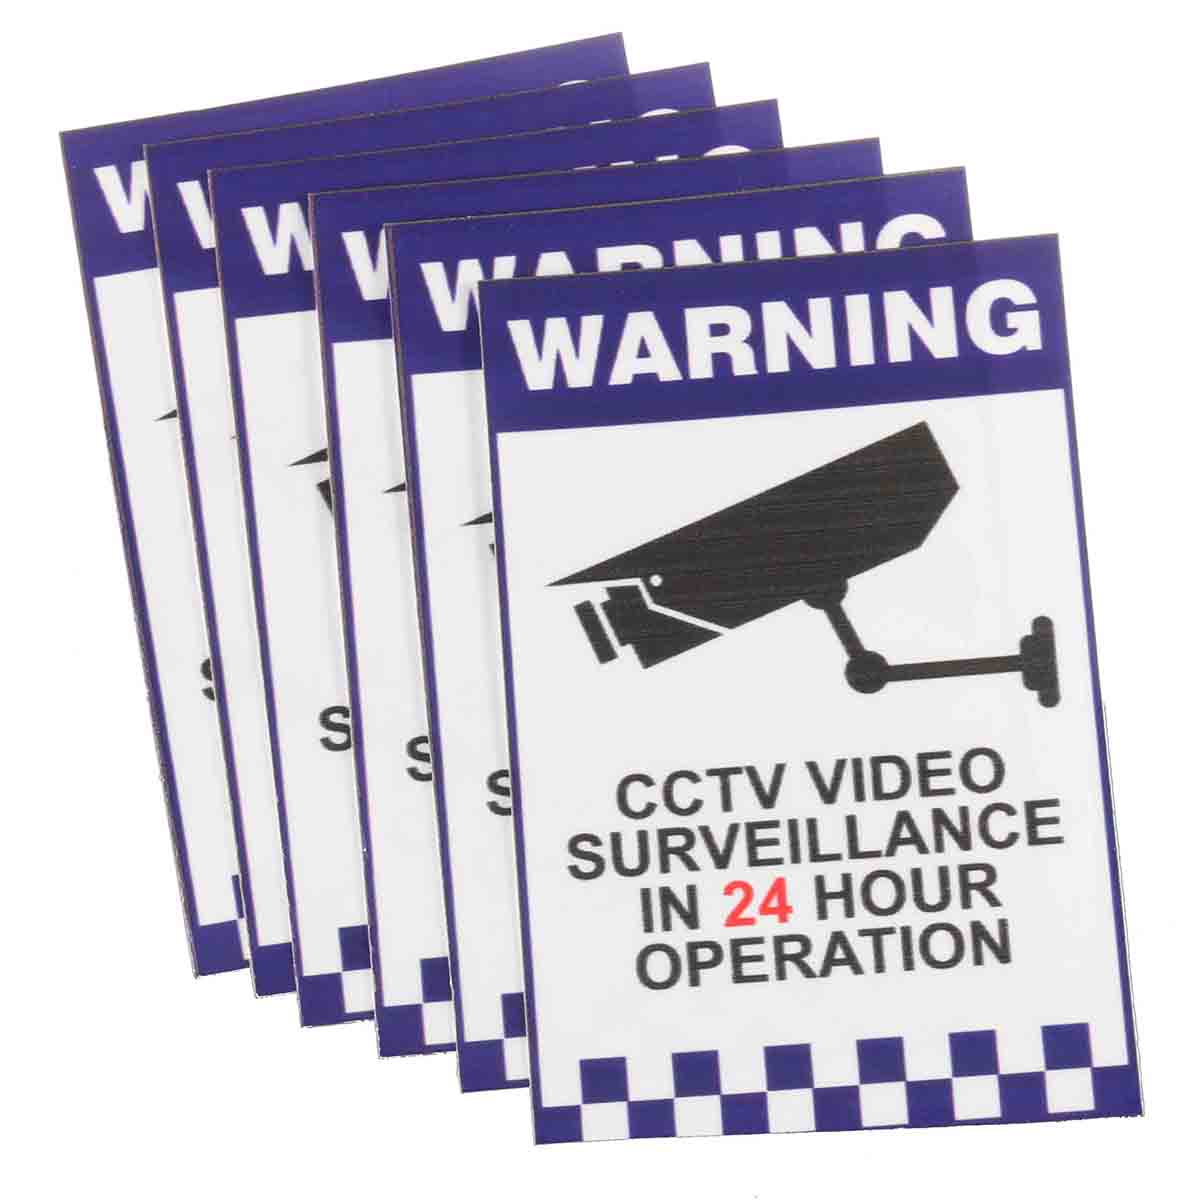 NEW Safurance 6x Warning CCTV Security Surveillance Camera Sign Warning Decal Sticker 66x100mm Home Security Safety 24 hours cctv security warning board transparent black multi colored